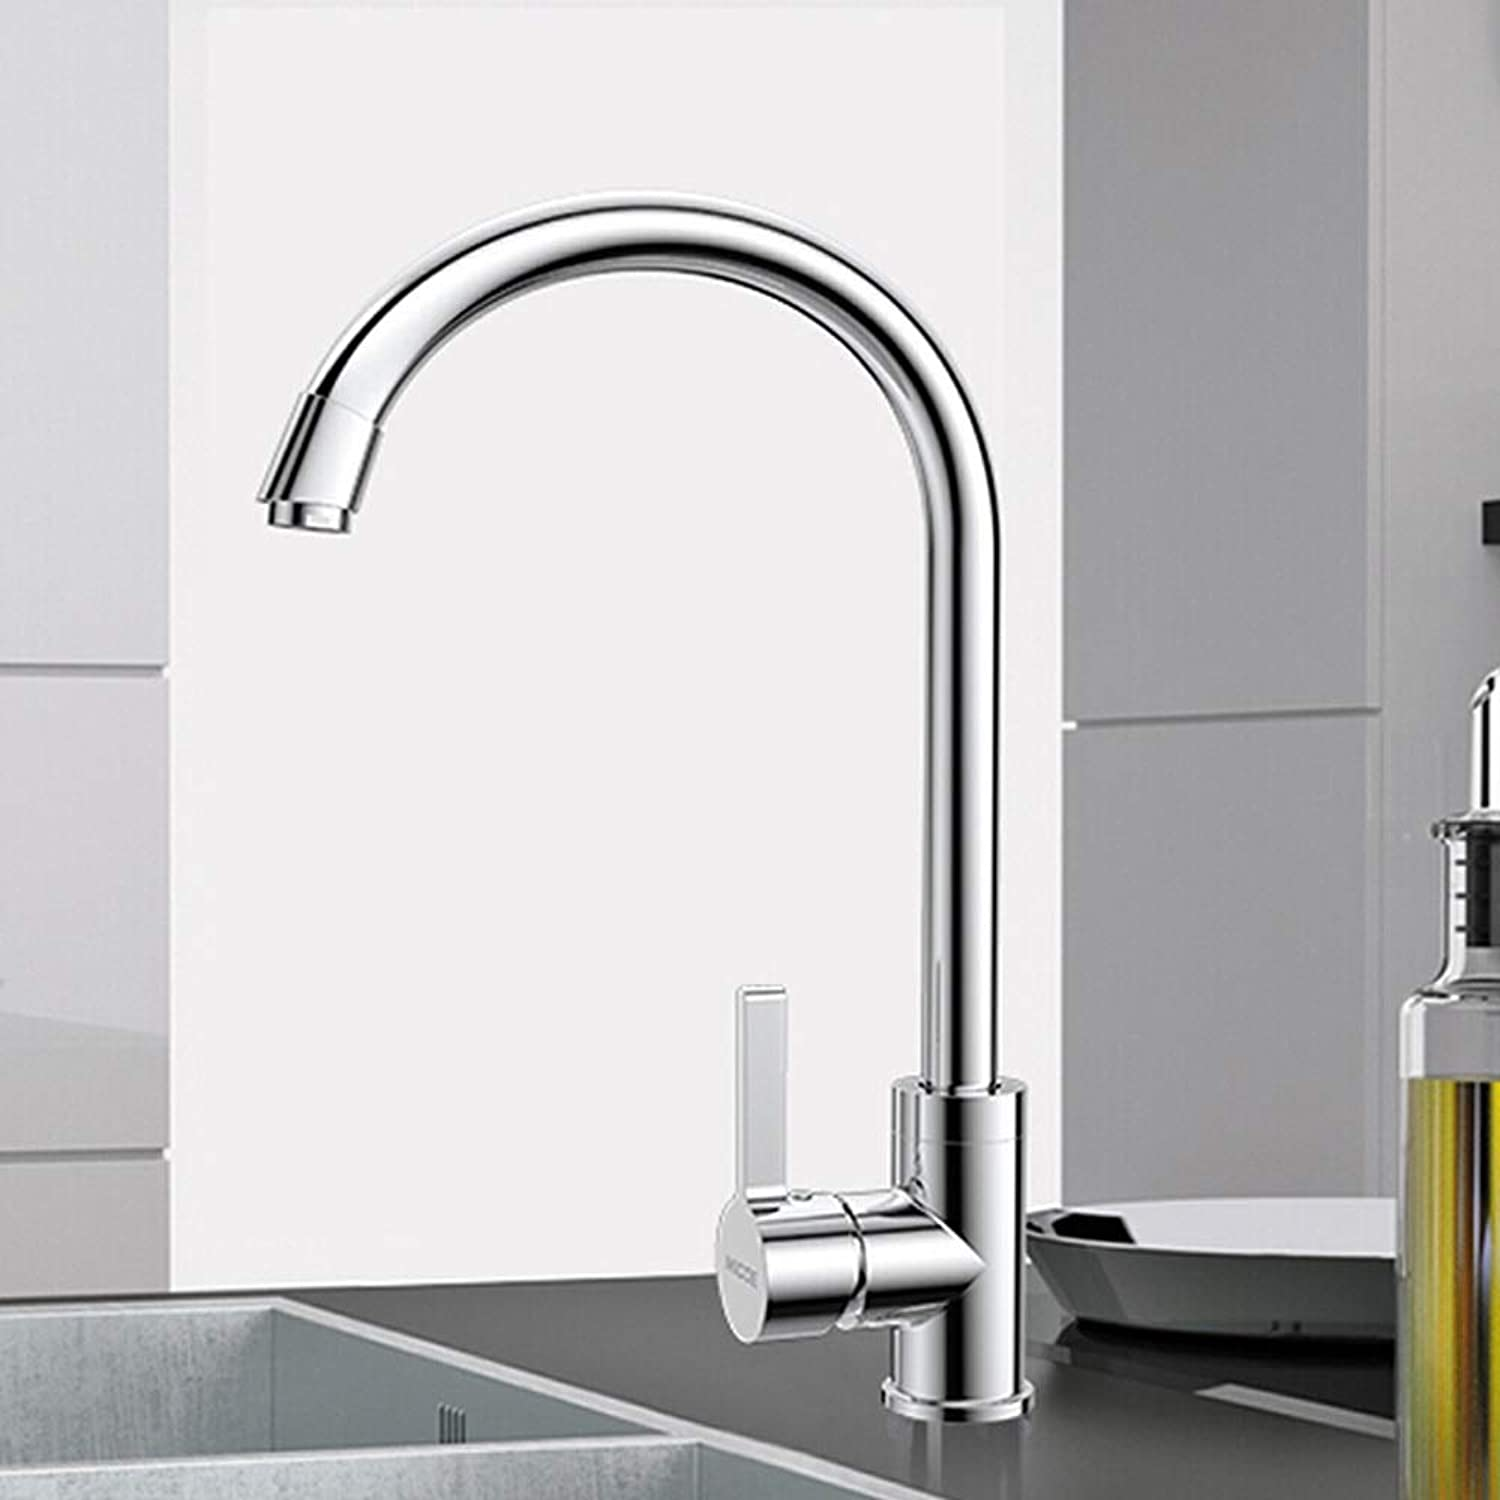 WOOMD 360 Degree redating Hot and Cold Basin Faucet Commercial Kitchen Faucets Stainless Steel Single Handle Swivel Kitchen Sink Faucet Basin Faucet Stainless Steel Kitchen Faucet